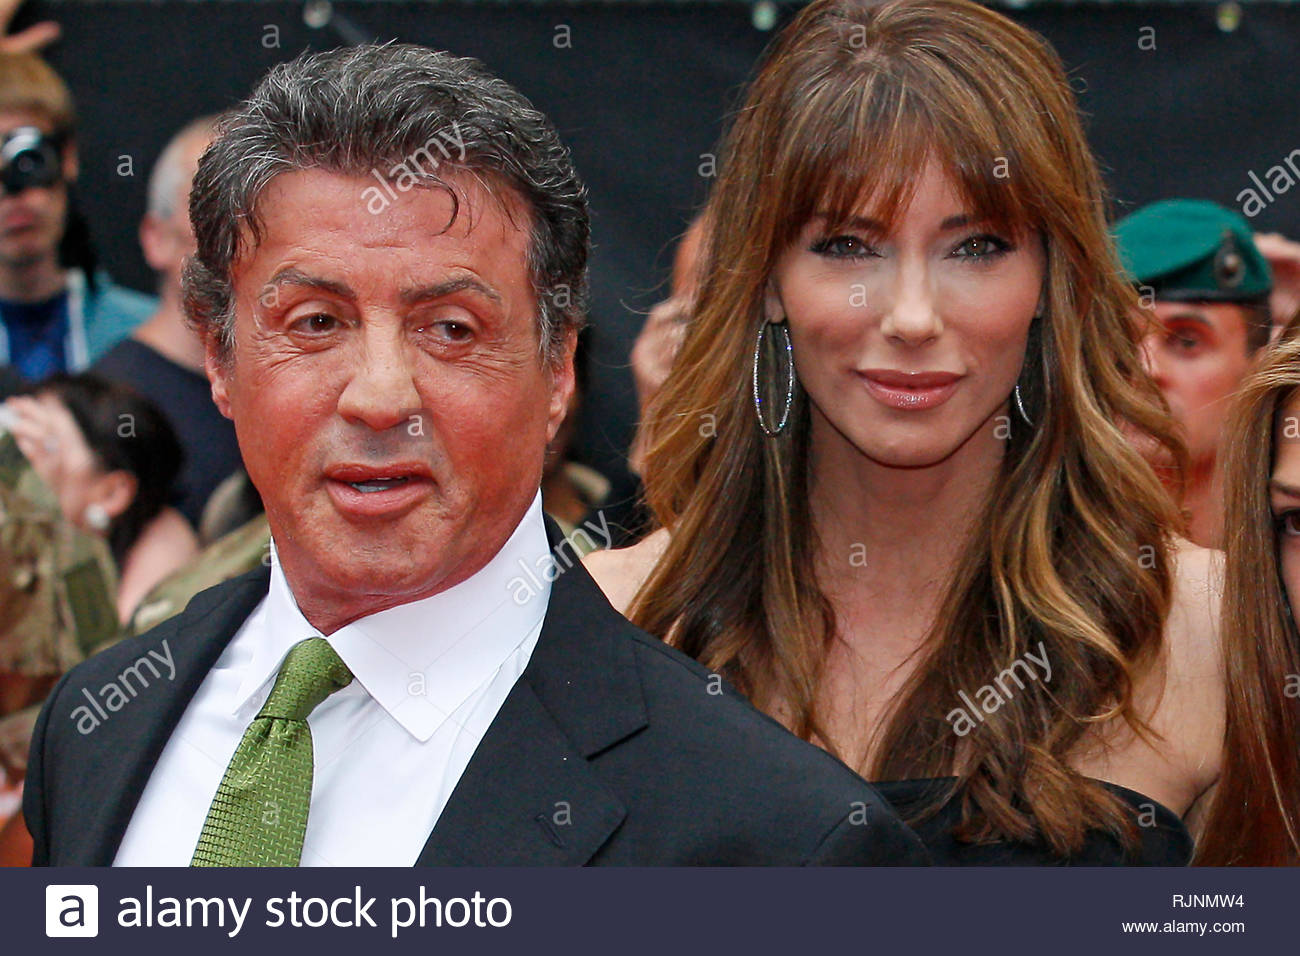 Sylvester Stallone & his wife Jennifer Flavin and daughters at film premiere in London. 13 August 2012. Stock Photo